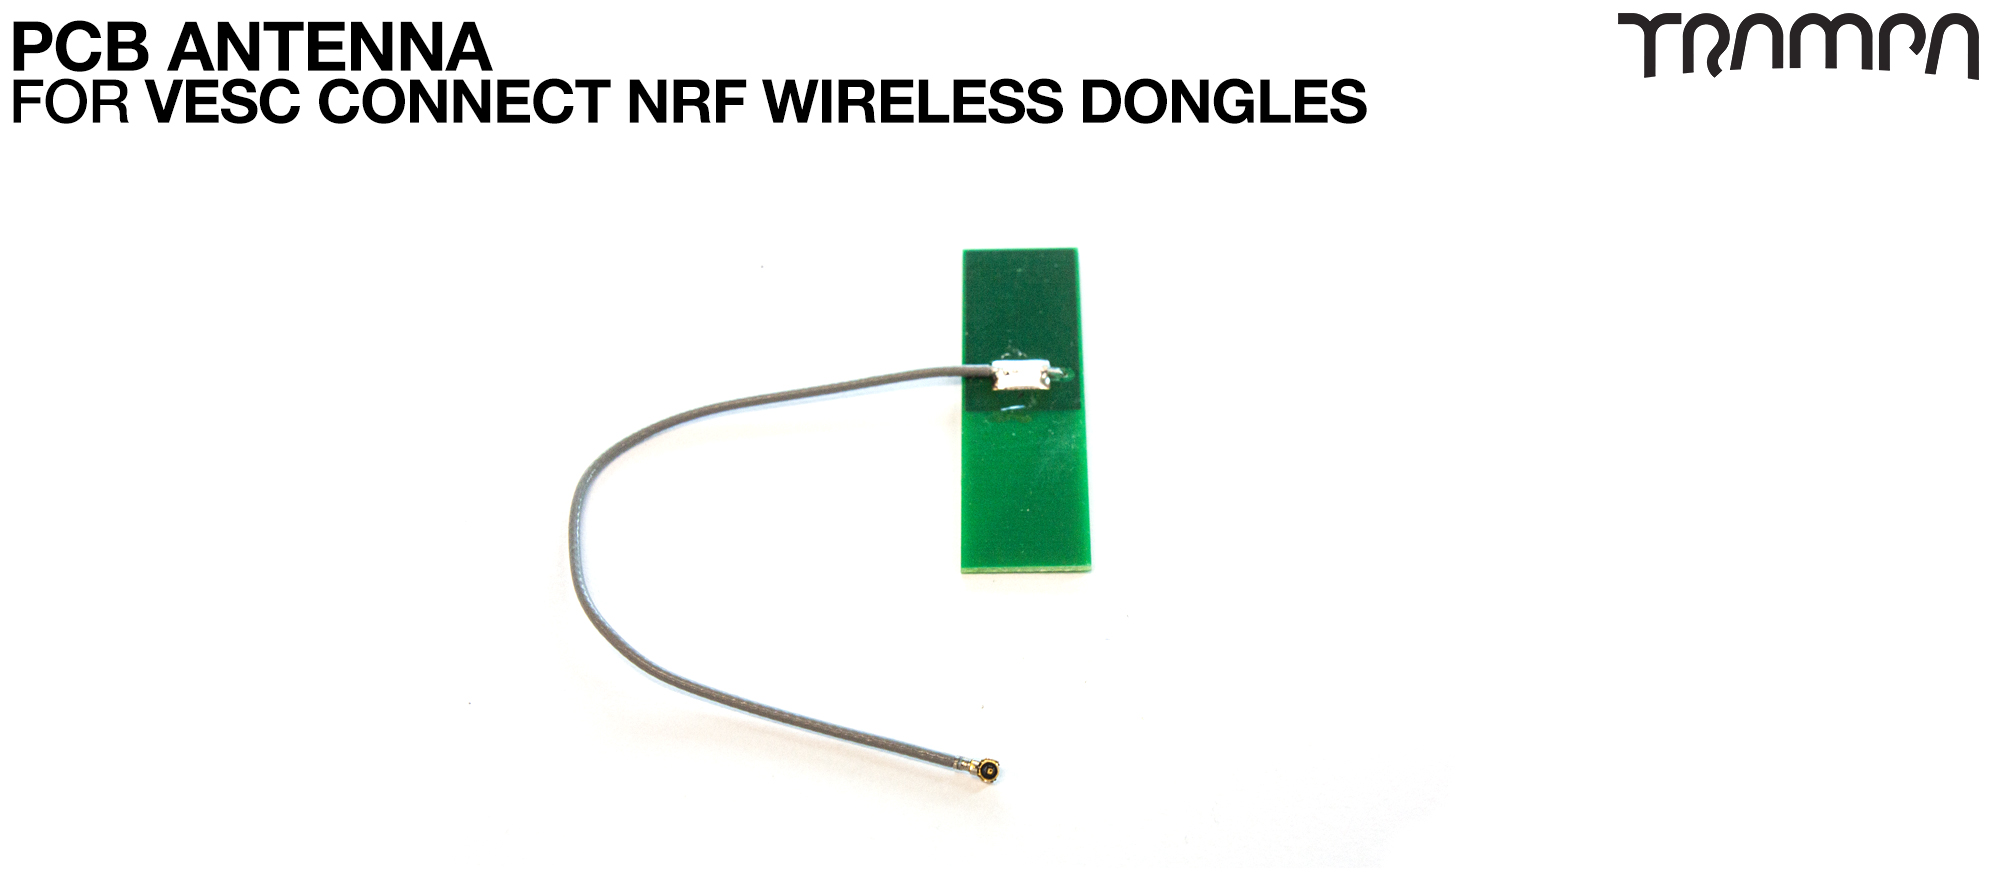 External PCB Antenna for VESC Connect NRF Wireless Dongles